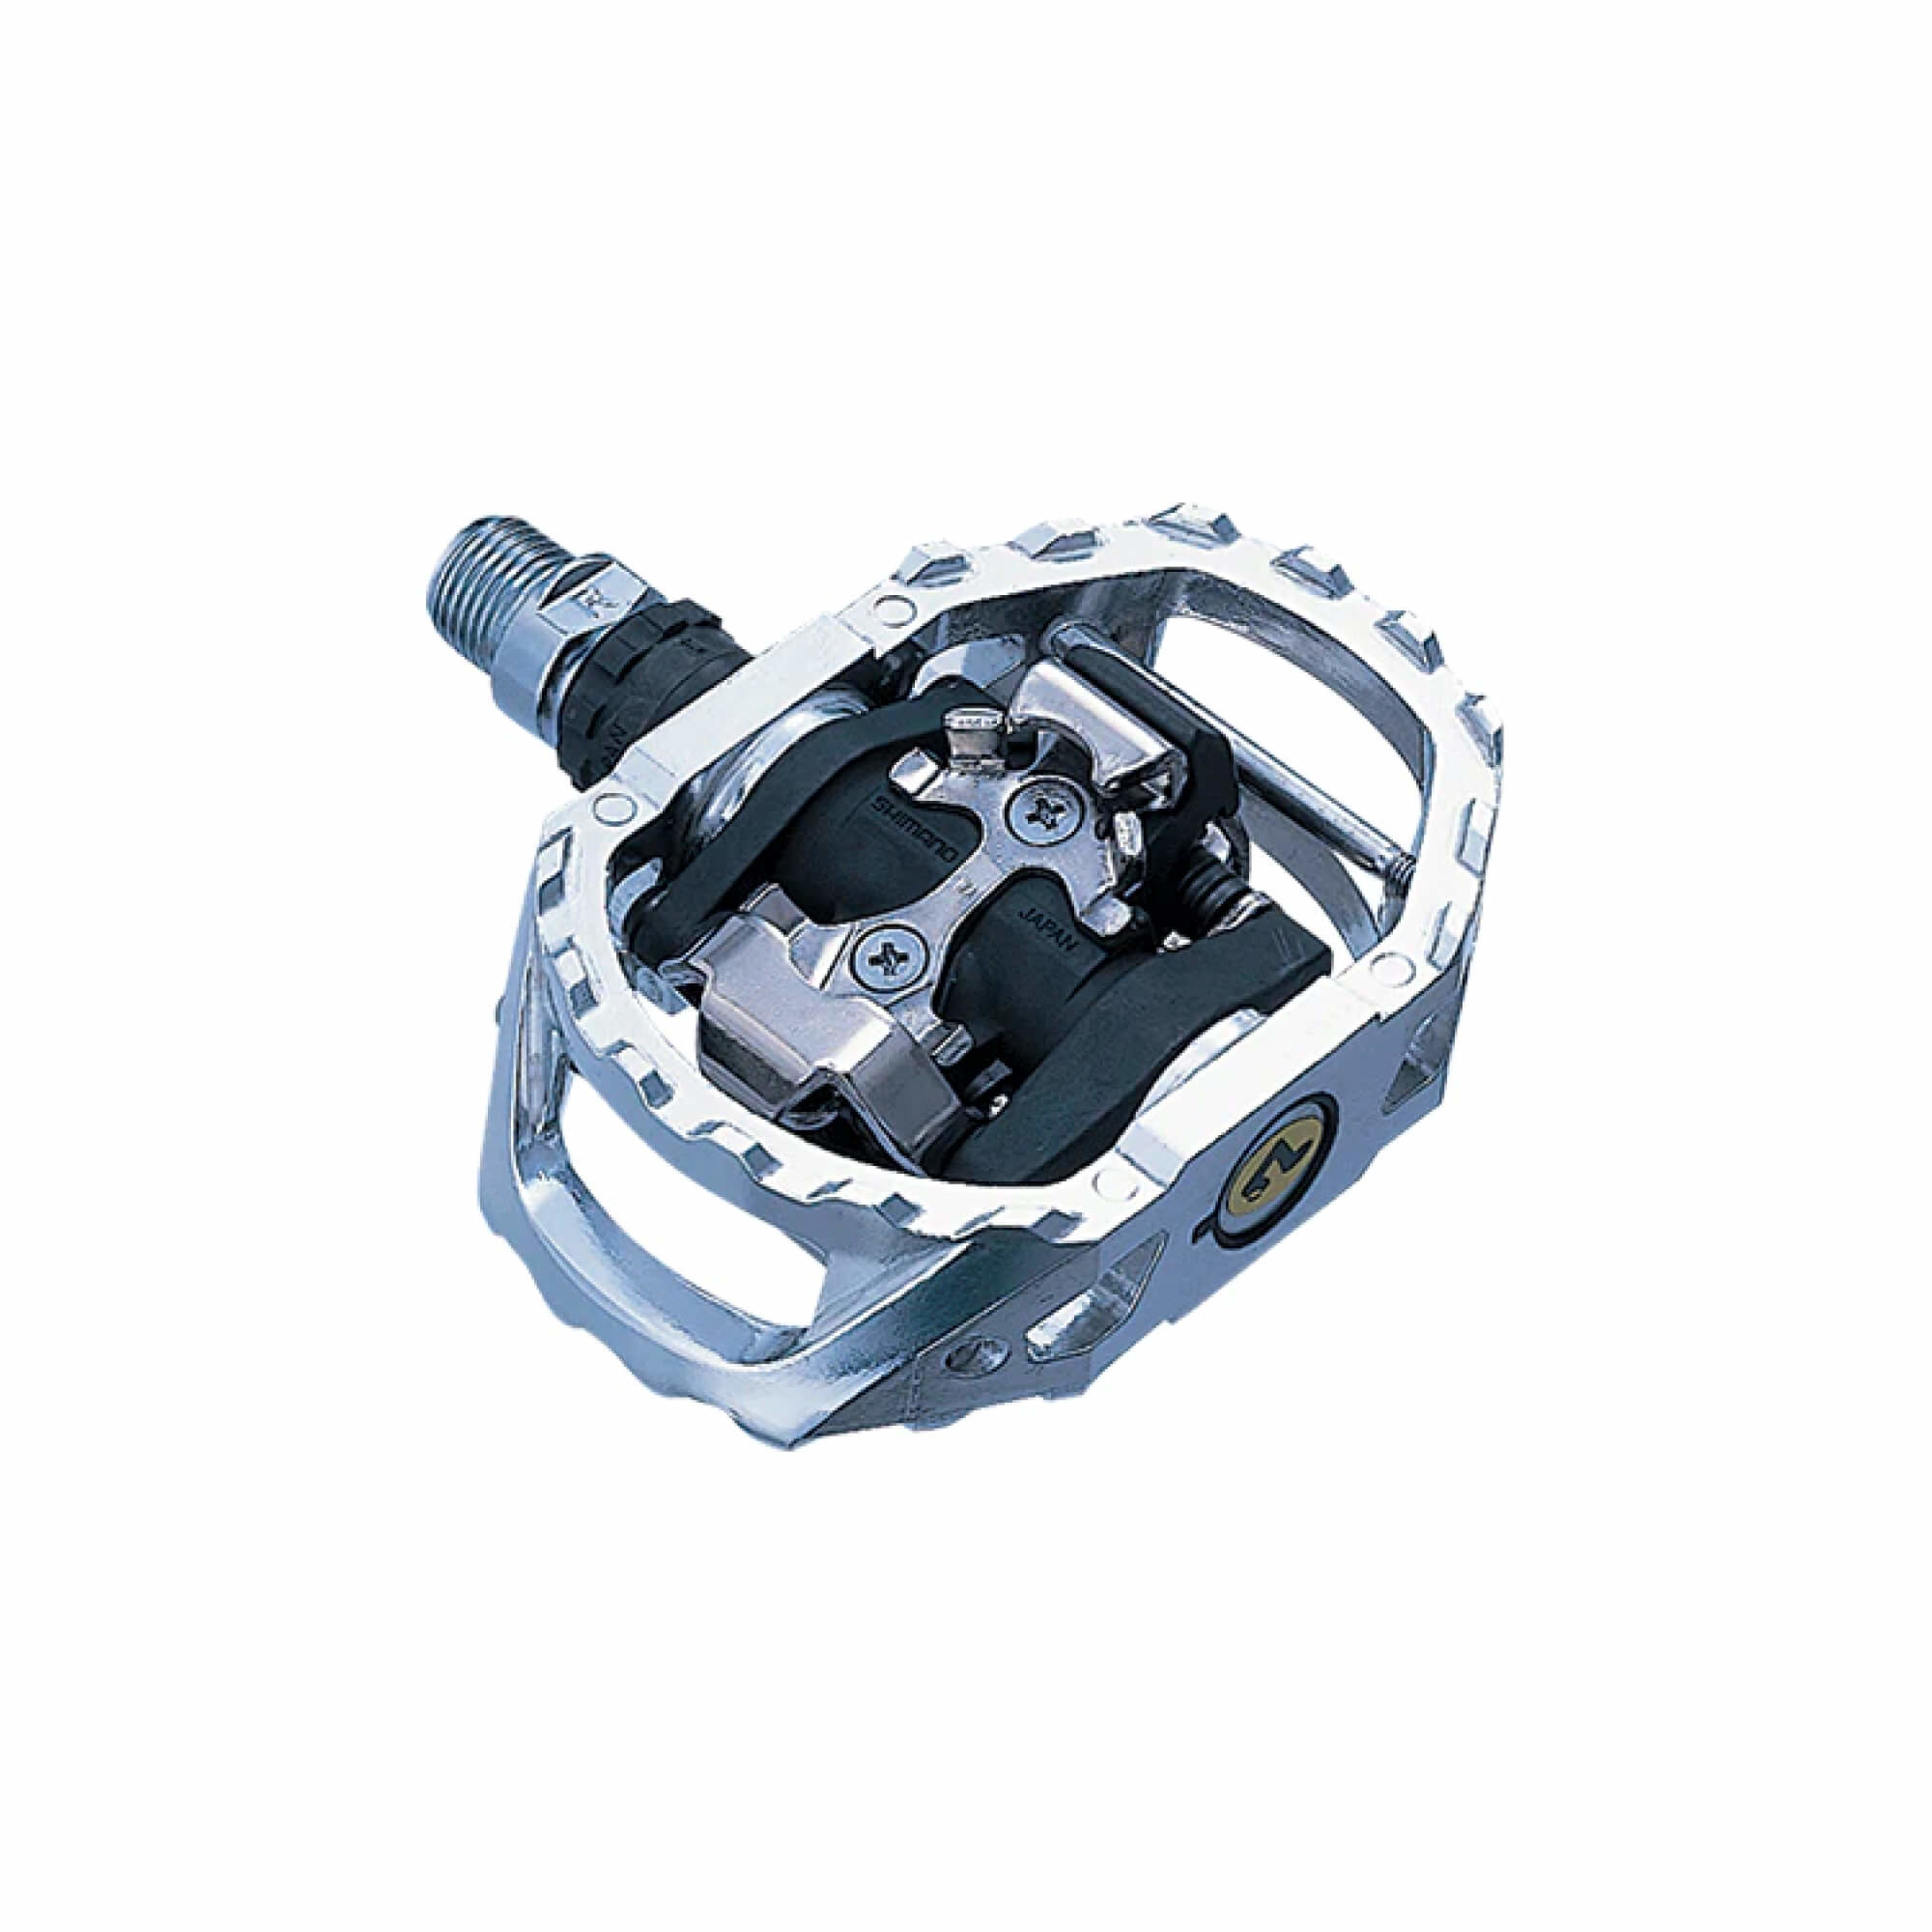 PD-M545 Spd Pedals Alloy Pop-Up Platforms-1